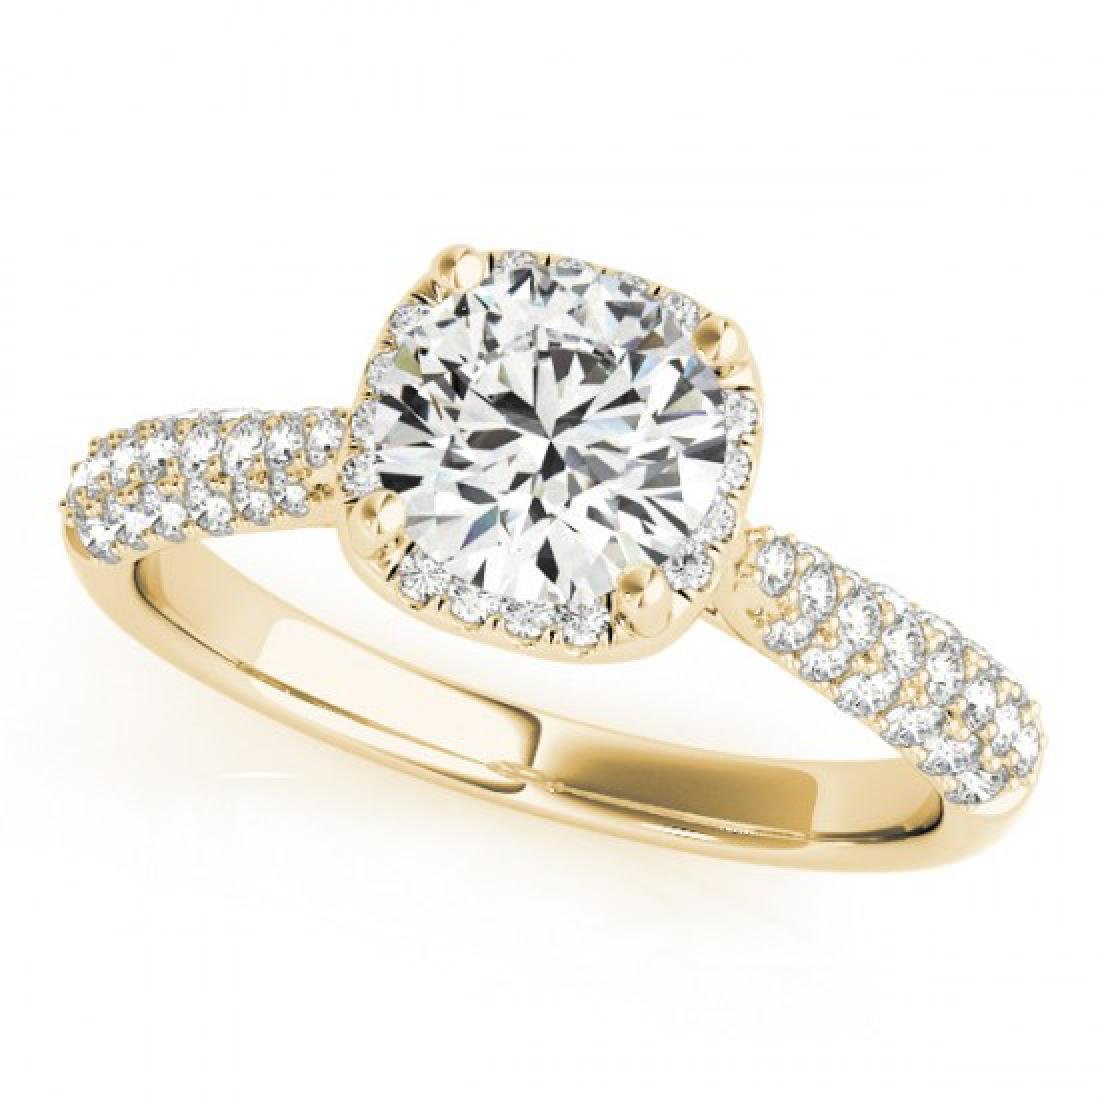 1.5 CTW Certified VS/SI Diamond Solitaire Halo Ring 14K - 2